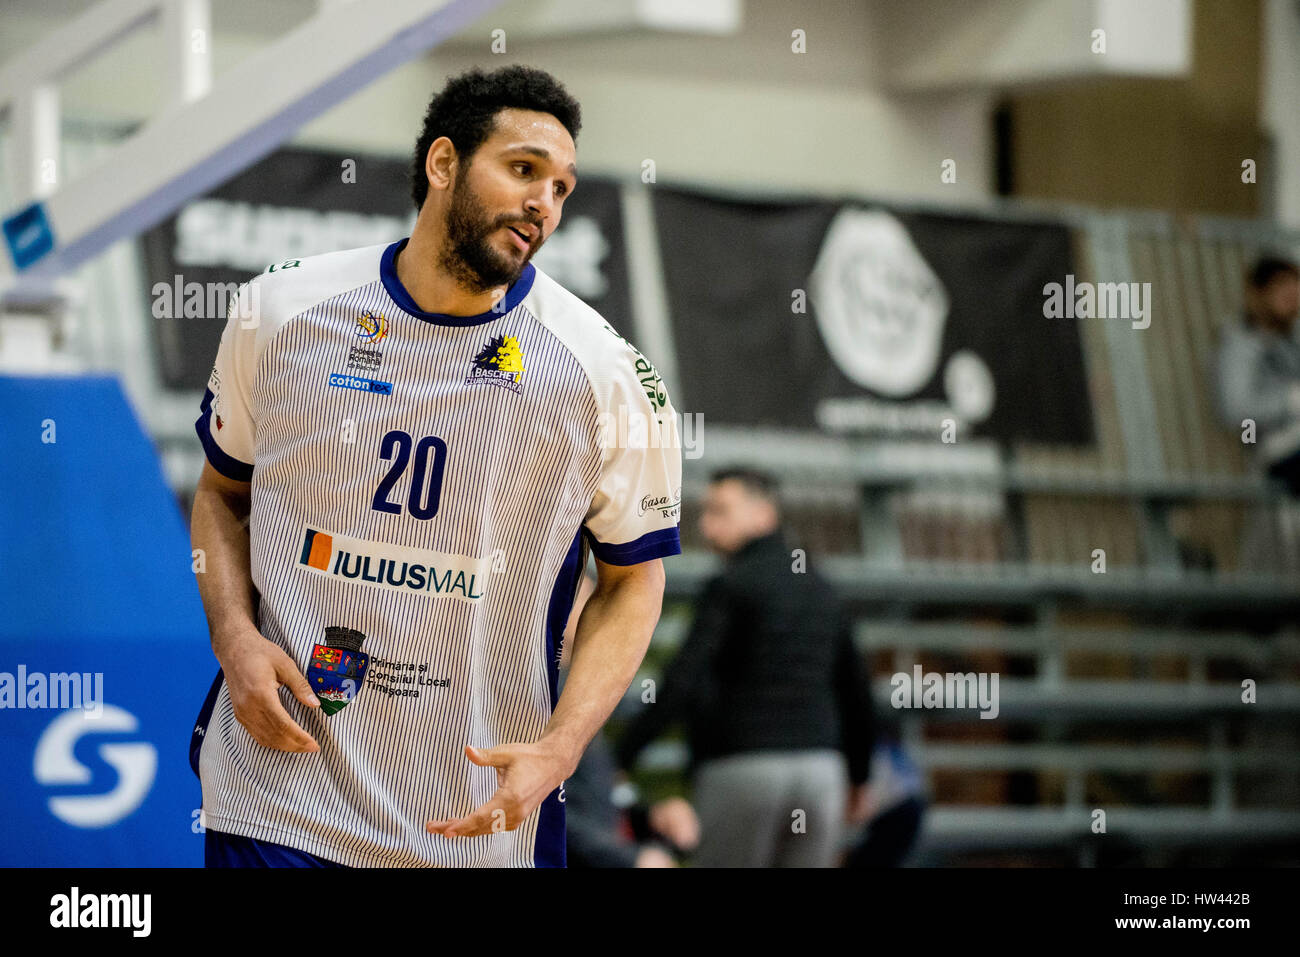 March 15, 2017: Adrian Diaz #20 of BC SCM Timisoara  during the LNBM - Men's National Basketball League game between Stock Photo